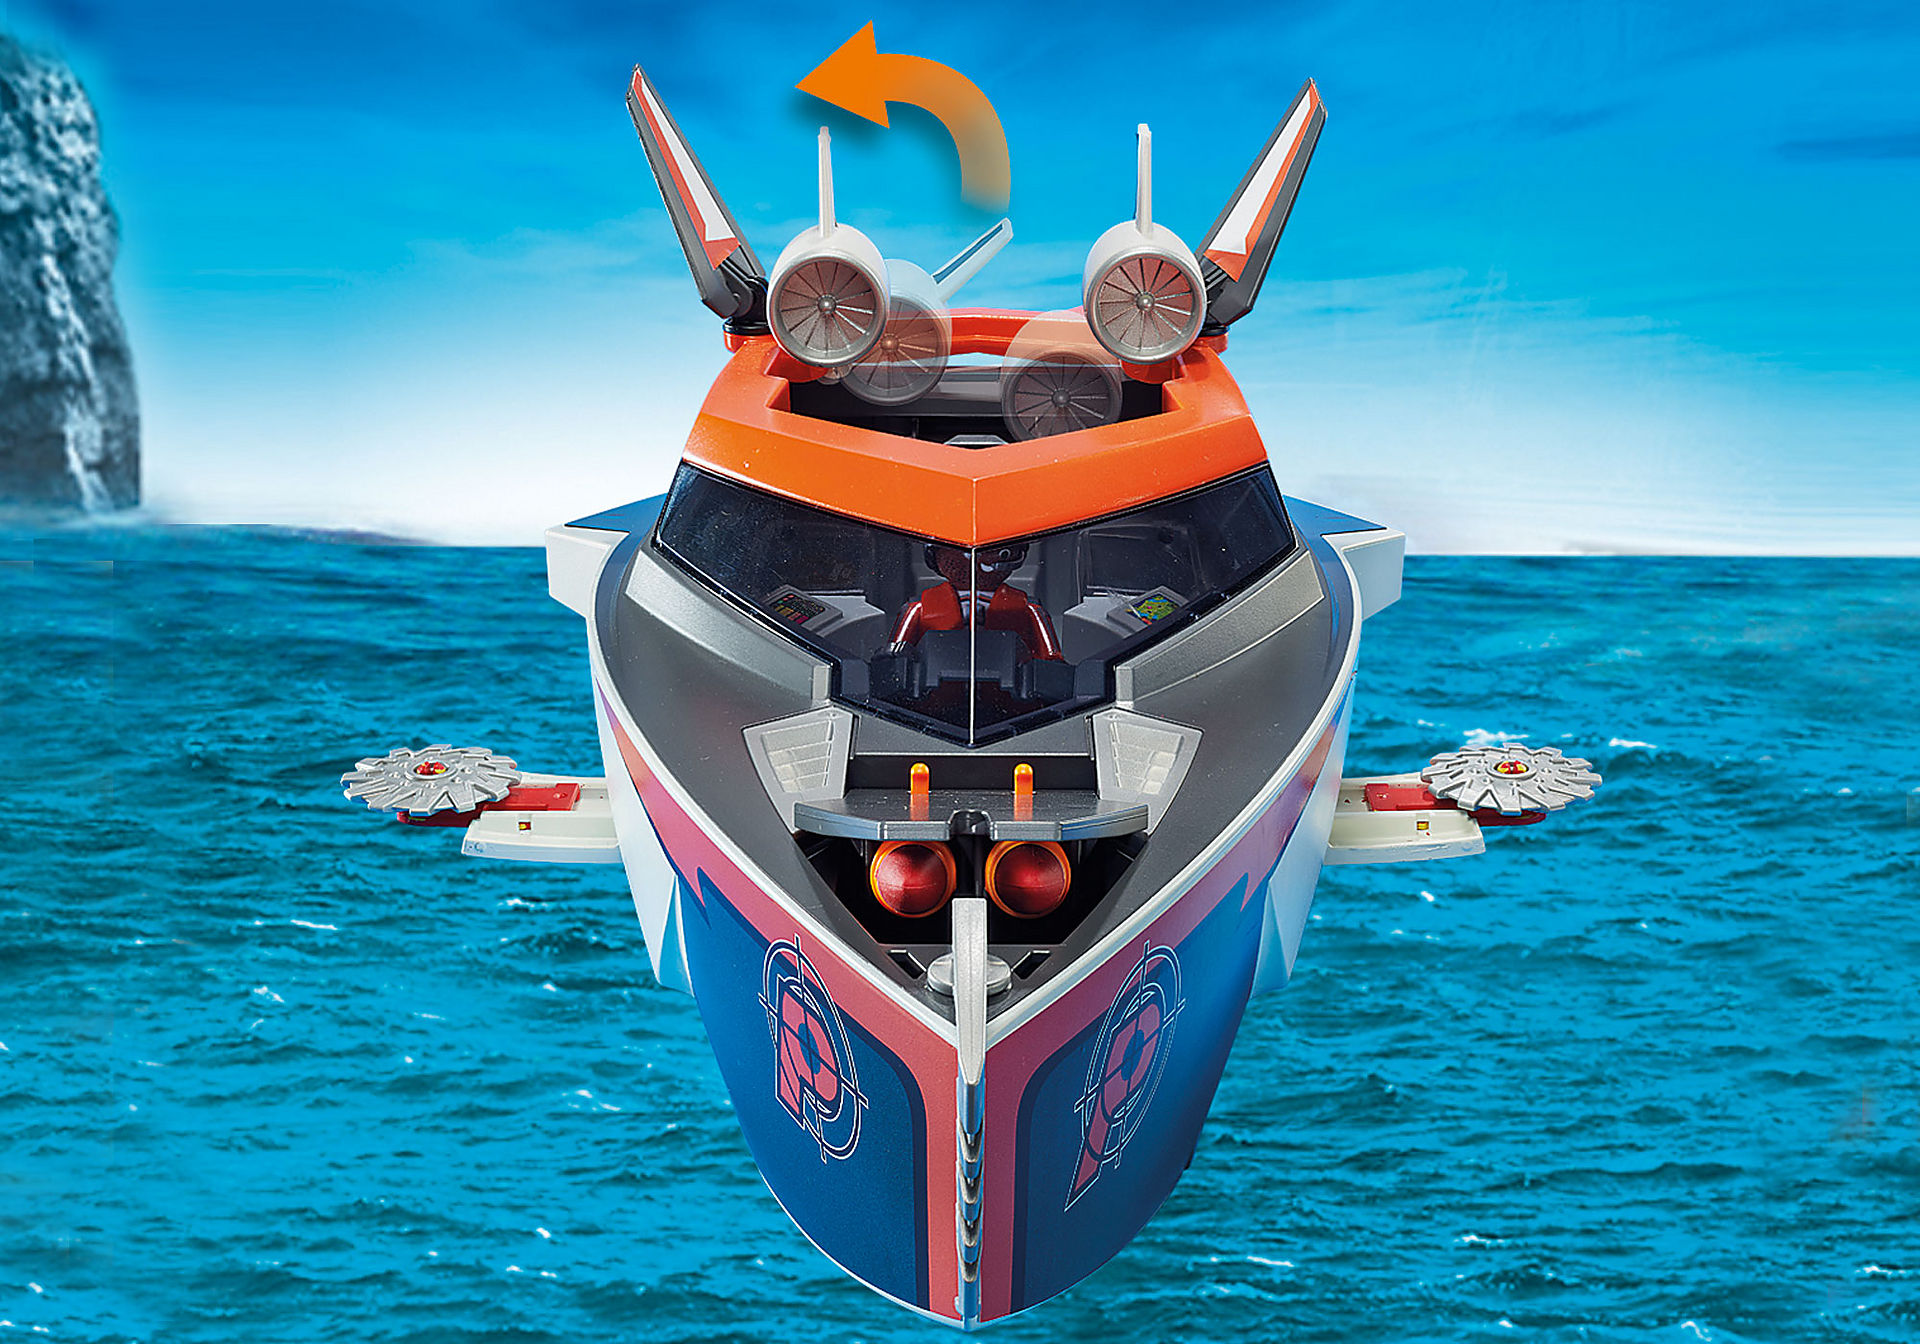 70002 Bateau Turbo Spy Team zoom image7